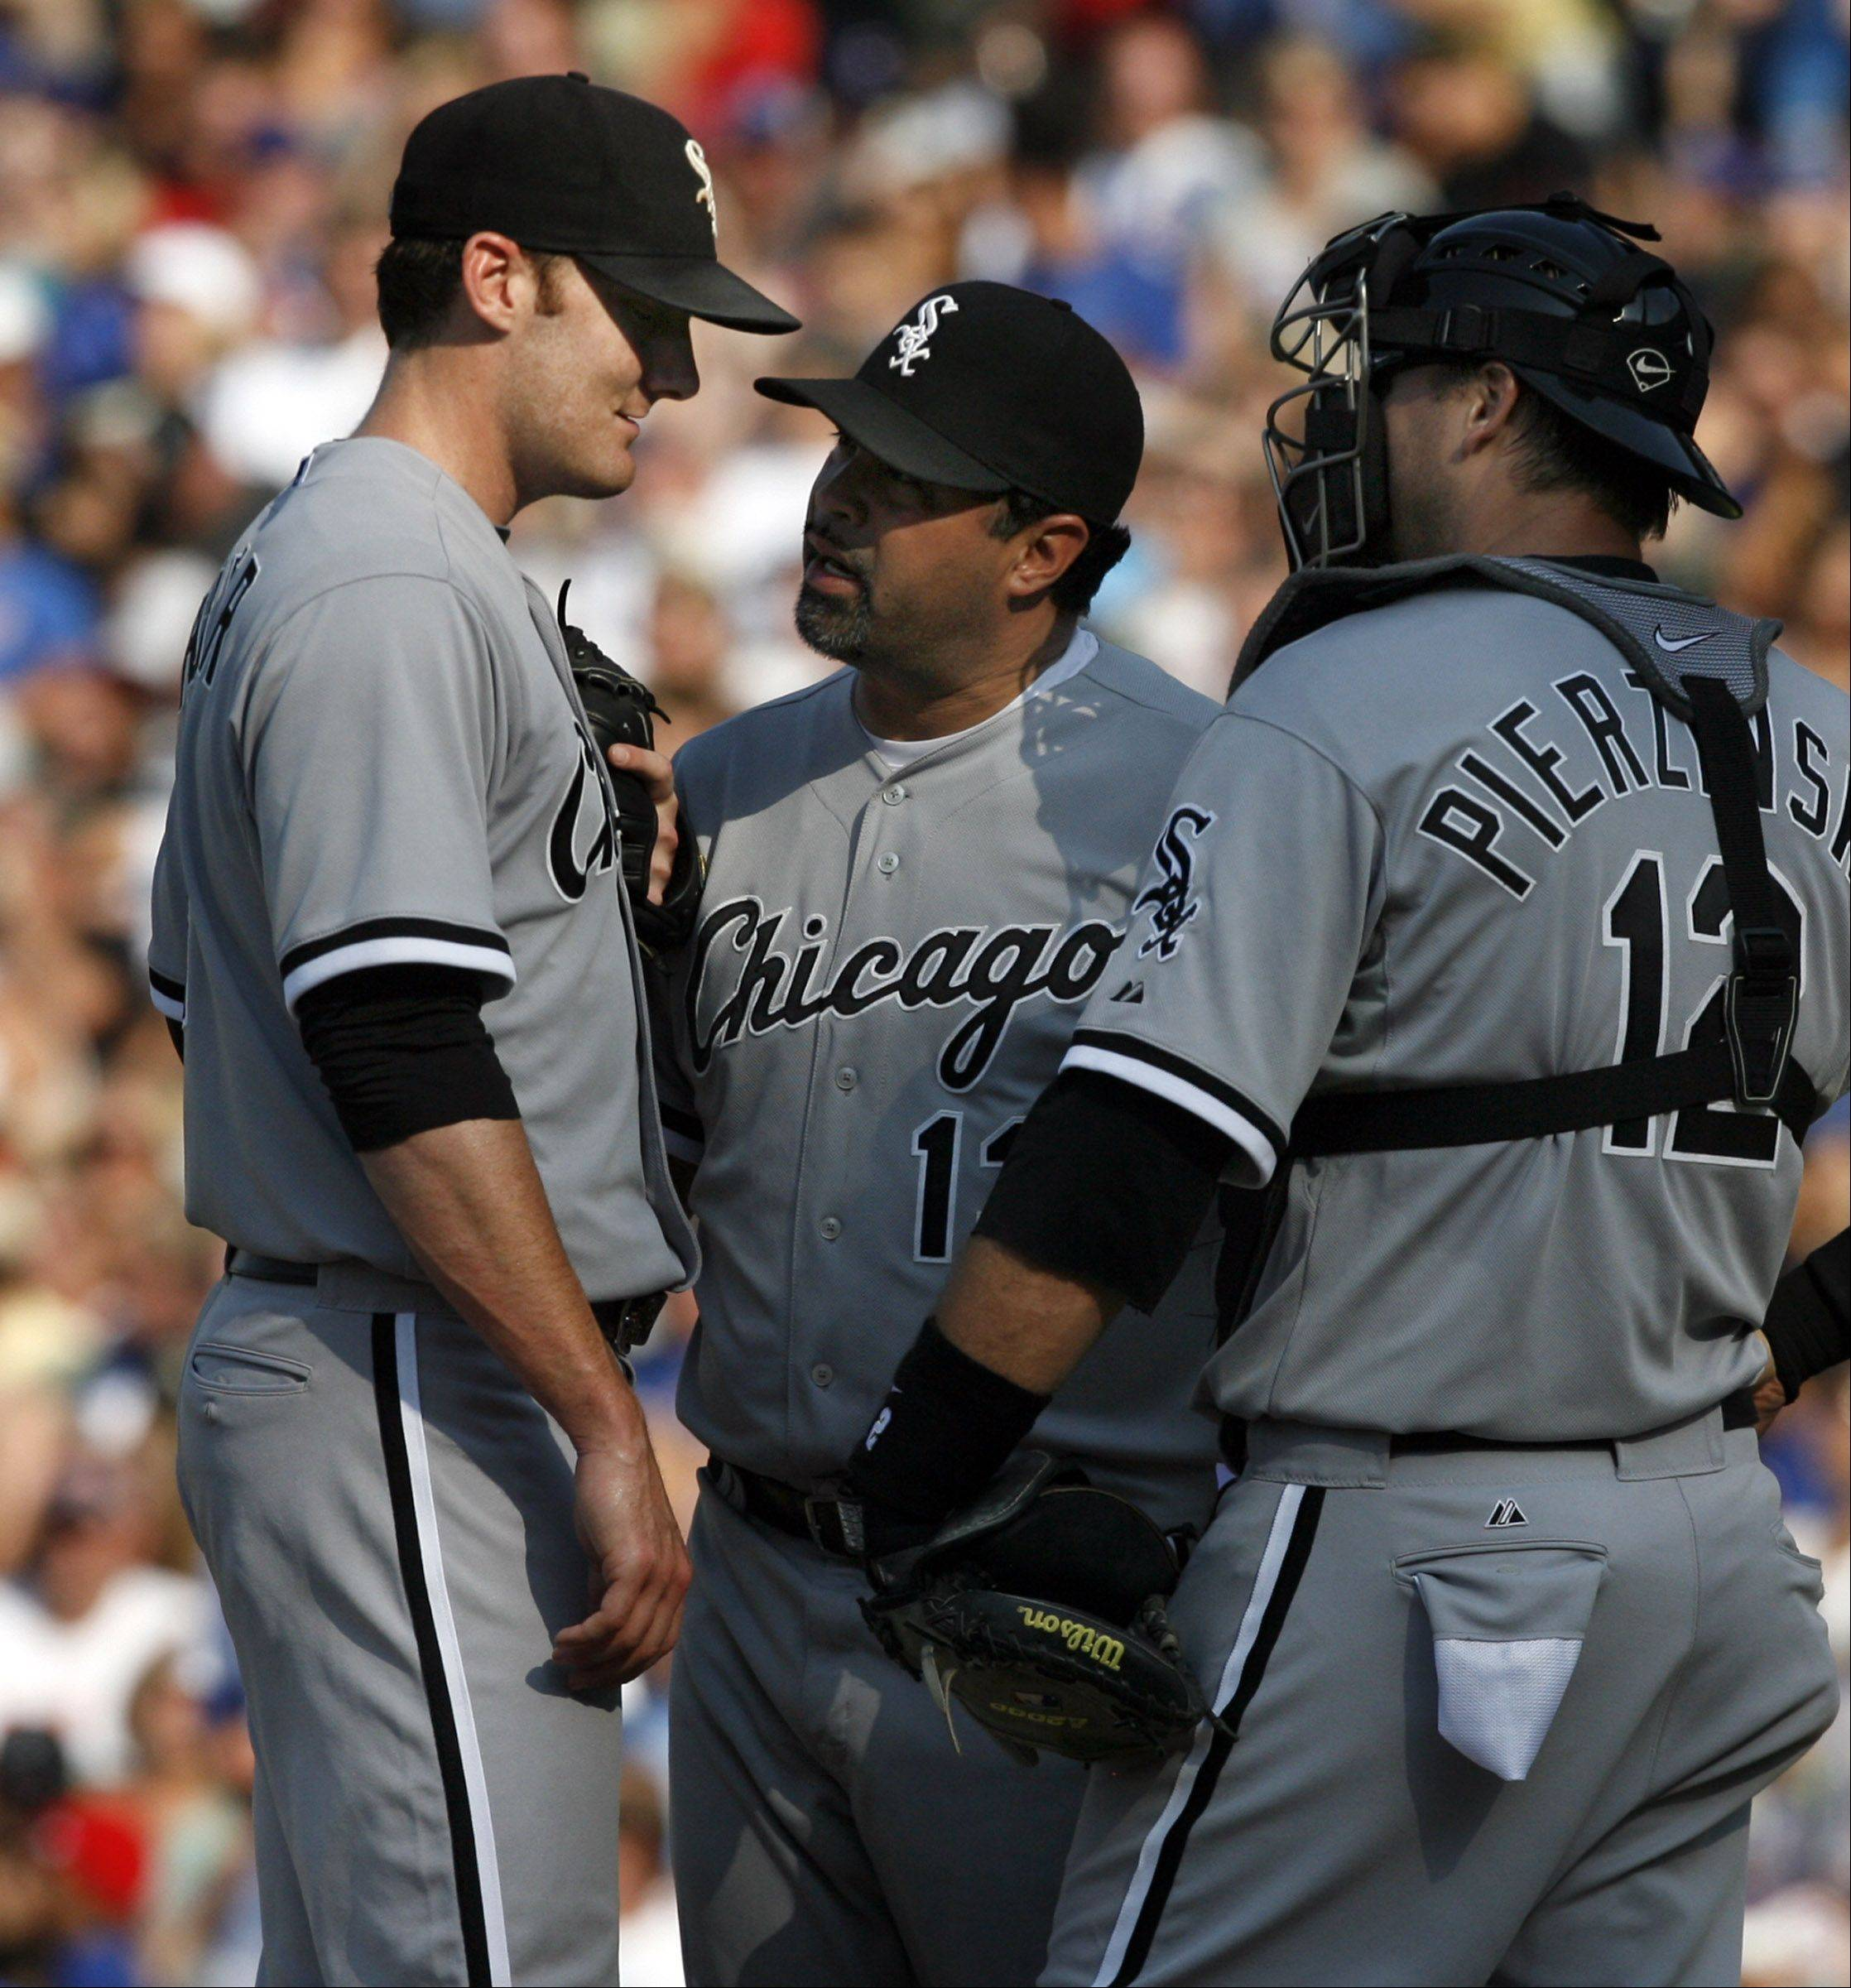 White Sox manager Ozzie Guillen talks to pitcher Philip Humber and catcher A.J. Pierzynski late in the game against the Cubs at Wrigley Field on Saturday.